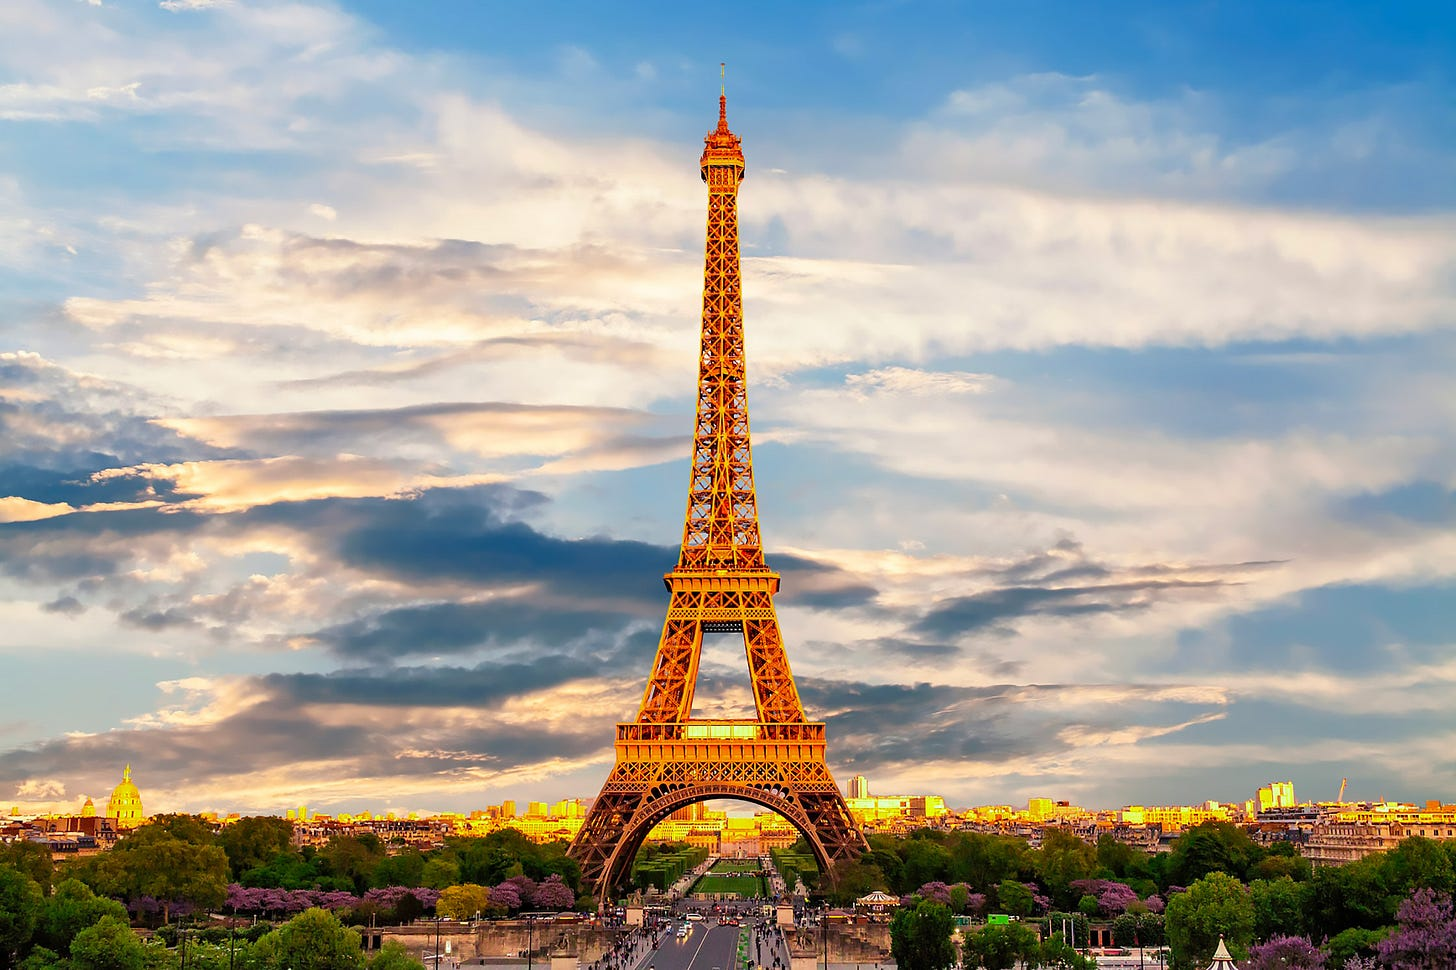 The Eiffel Tower will now produce its own wine